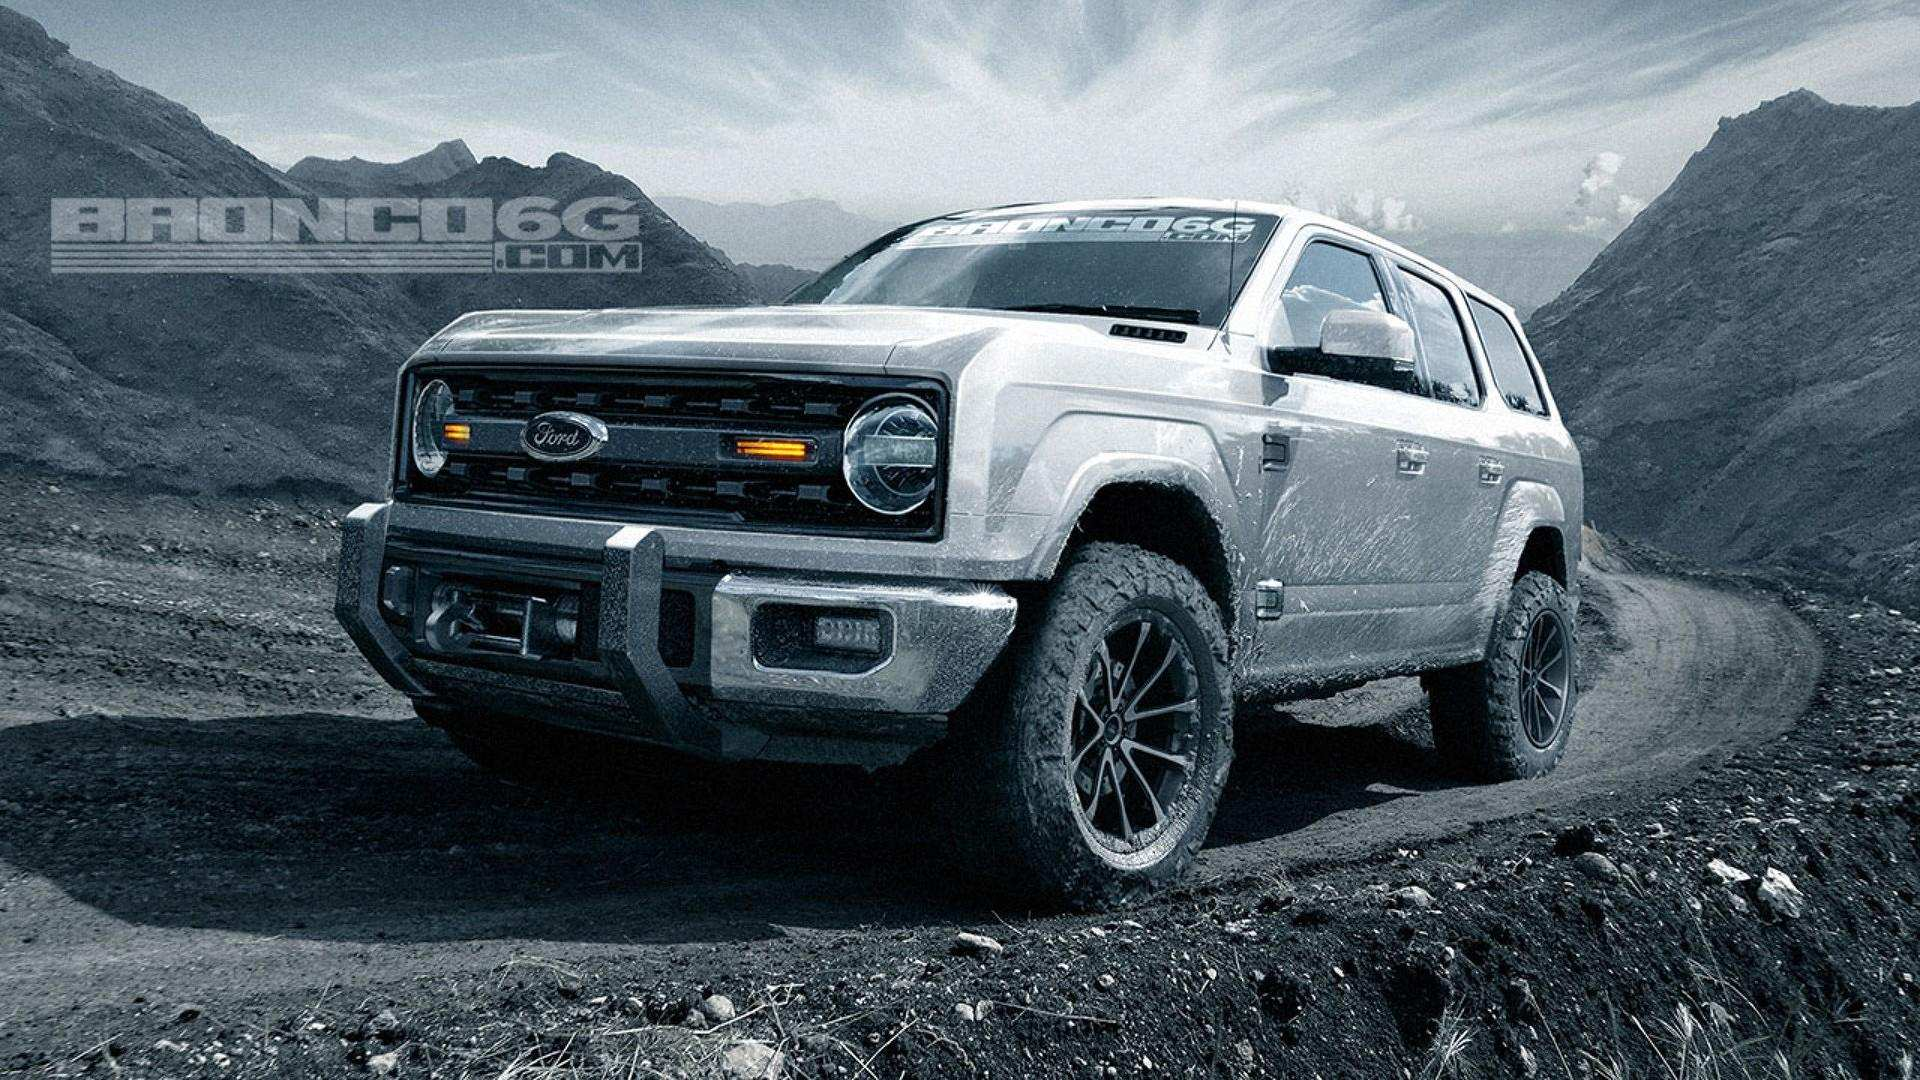 94 Best Review Ford Bronco 2020 Engine Images for Ford Bronco 2020 Engine